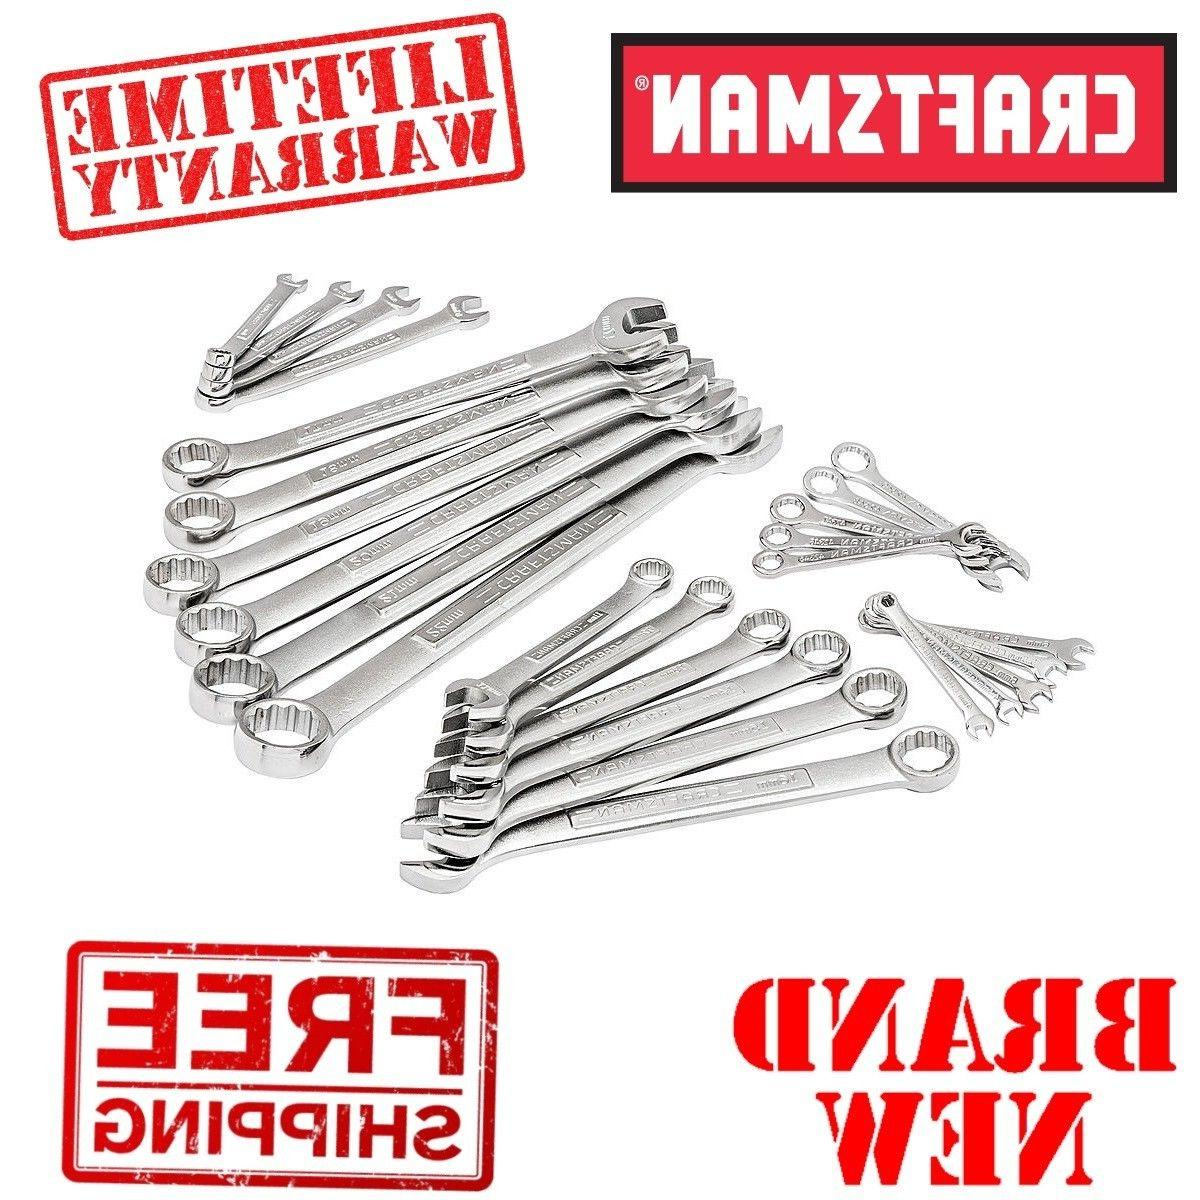 metric combination wrench set 12pt